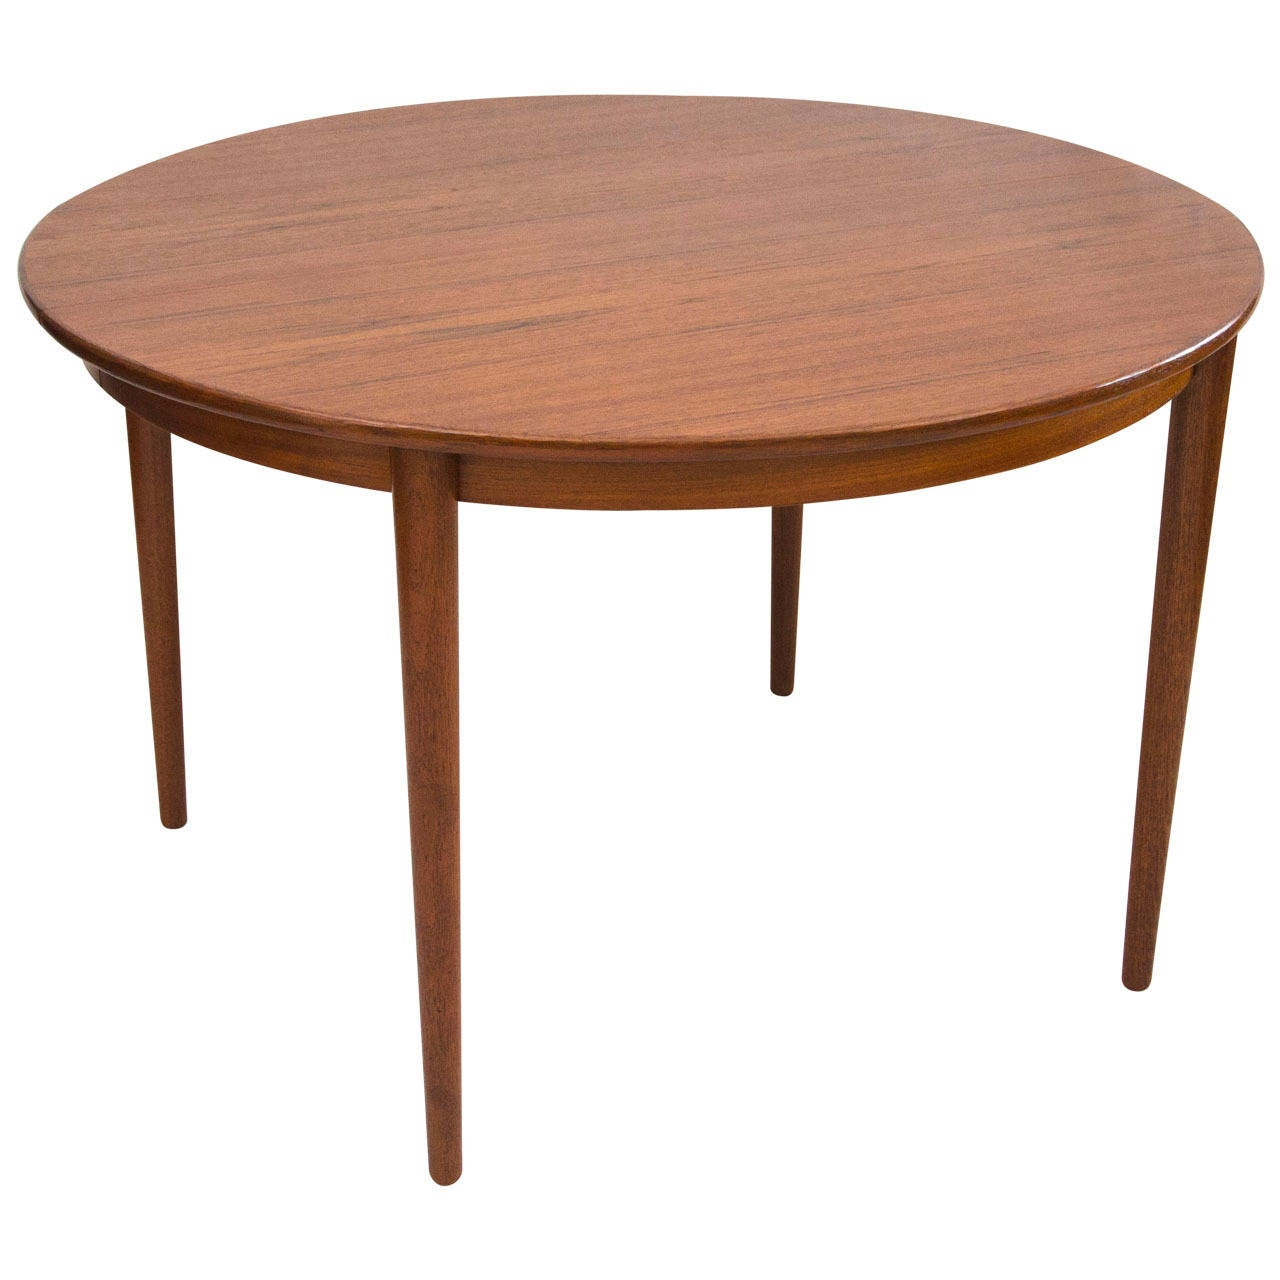 Danish Round Teak Dining Table With Two Leaves By Moreddi